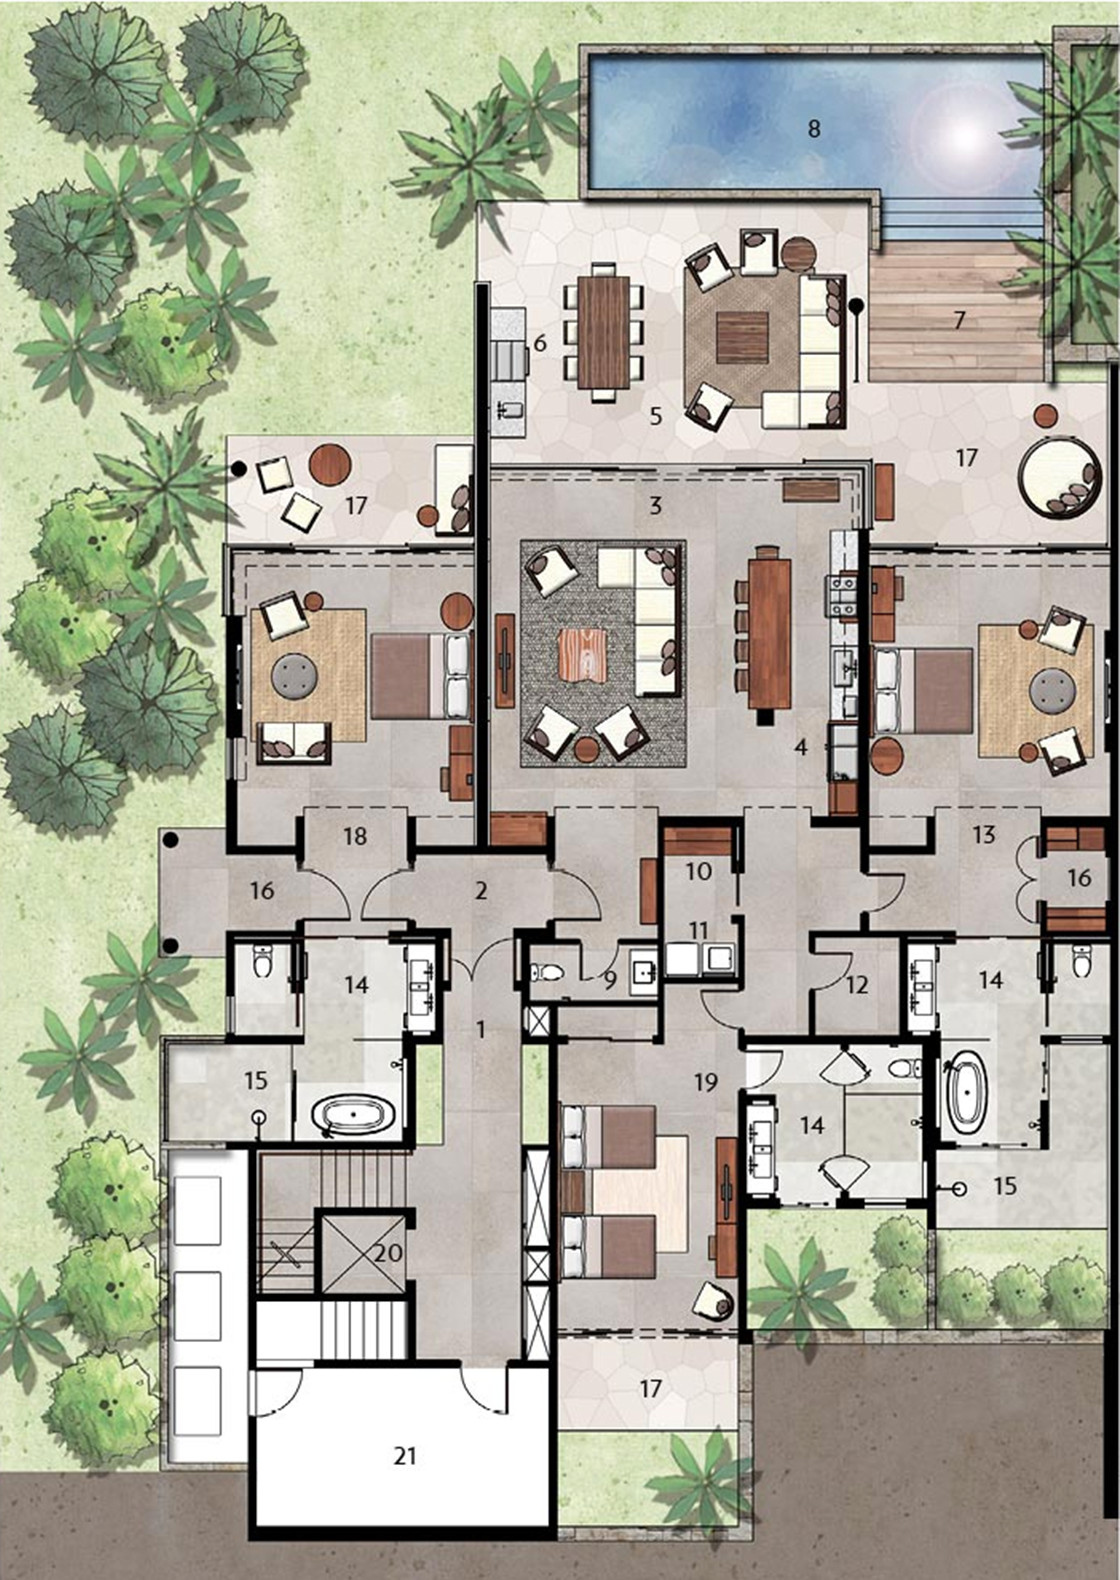 Los cabos luxury villas floor plans chileno bay resort for 4 bedroom luxury apartment floor plans